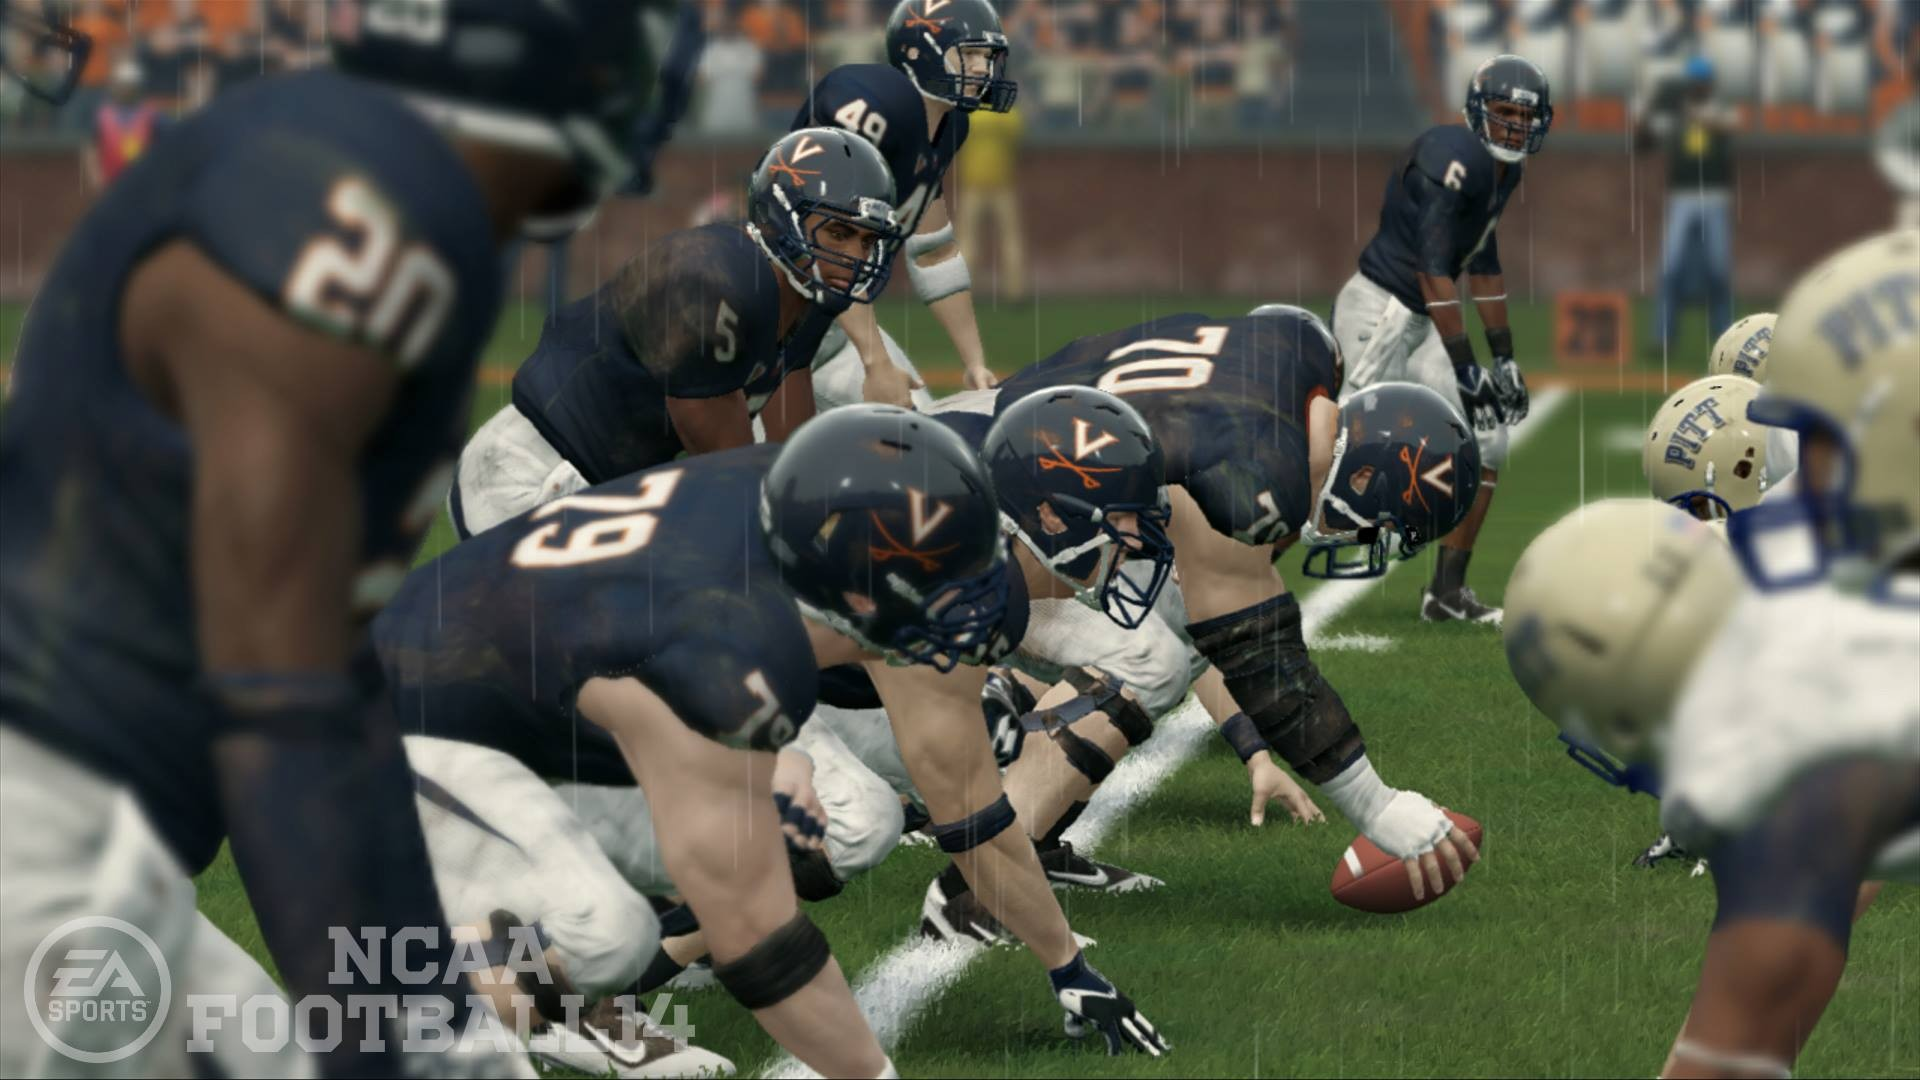 NCAA Football': Why video game series hasn't returned five